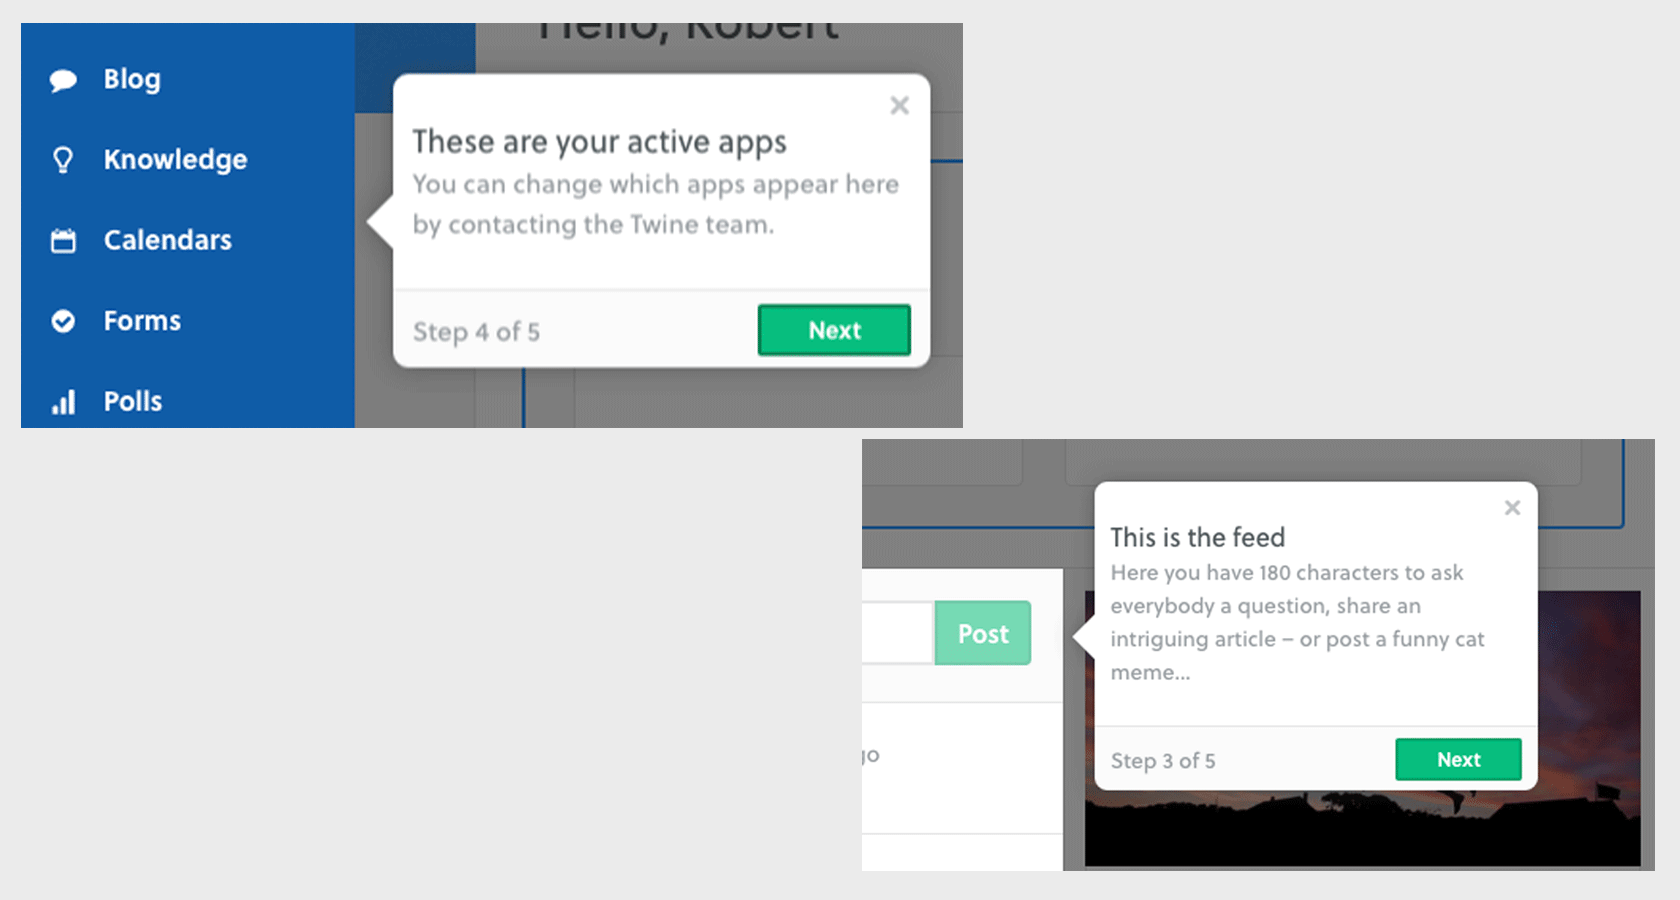 Tooltips are one of the common onboarding UX patterns.